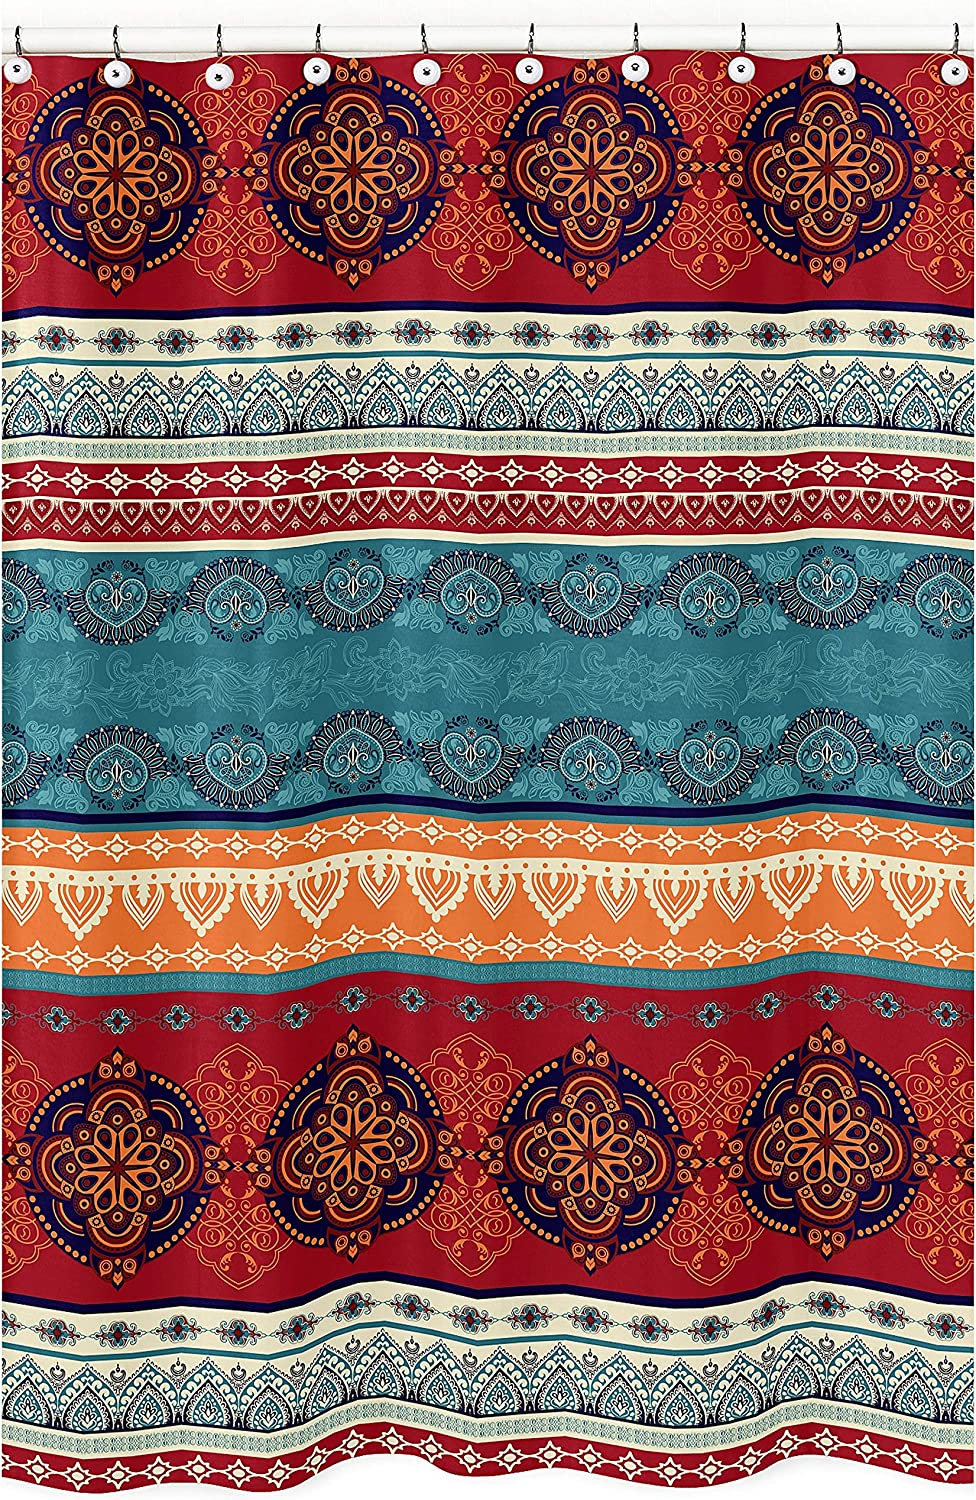 Boho Mandala Bohemian Chic Decorative Bathroom Fabric Bath Shower Curtain 72x72 Aztec Room Decor Ethnic Vintage Colorful Hipster Hippie Indian Tapestry Turquoise Patterned Retro Teal Blue Red Orange